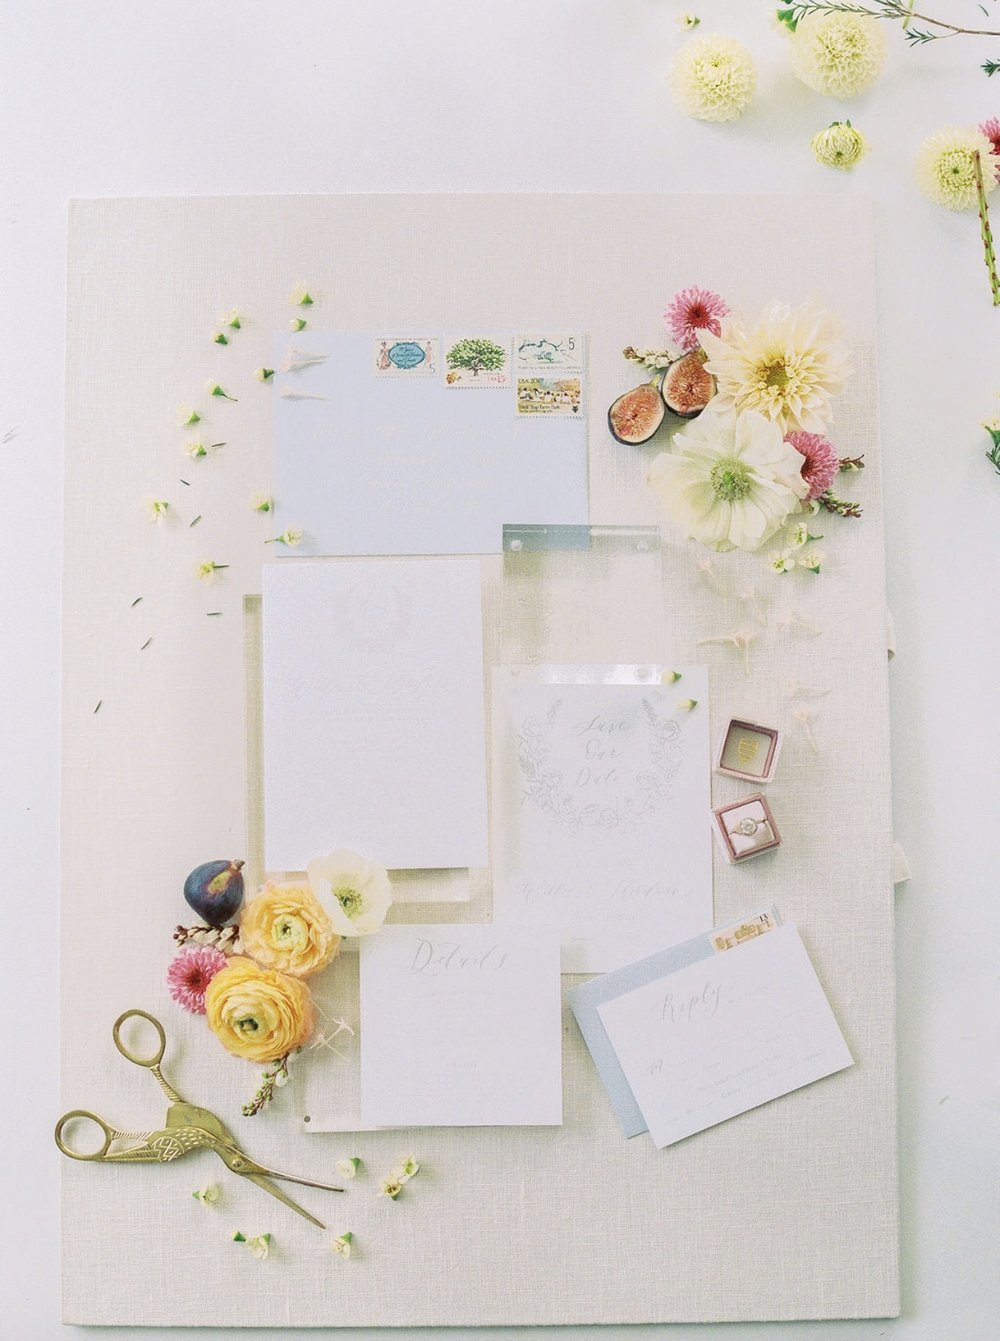 Spring Inspired Wedding Calligraphy Stationary by Anna Claire Calligraphy.jpg